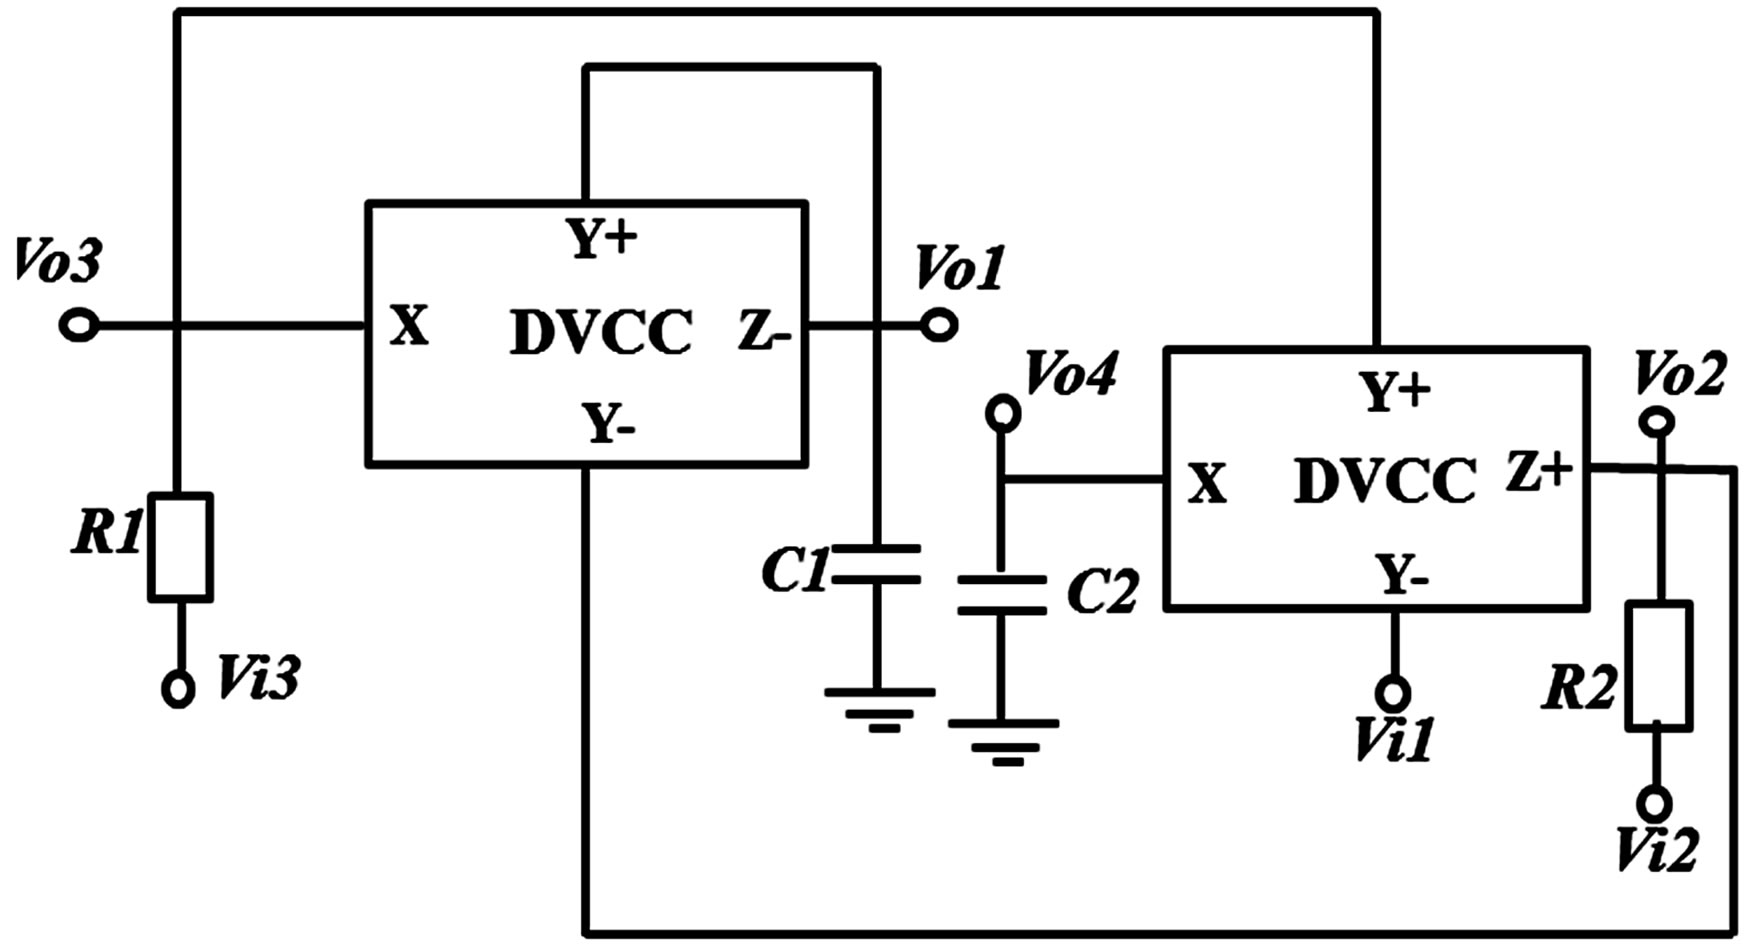 Dual Dvcc Based Voltage Mode Digitally Programmable Biquadratic Filter